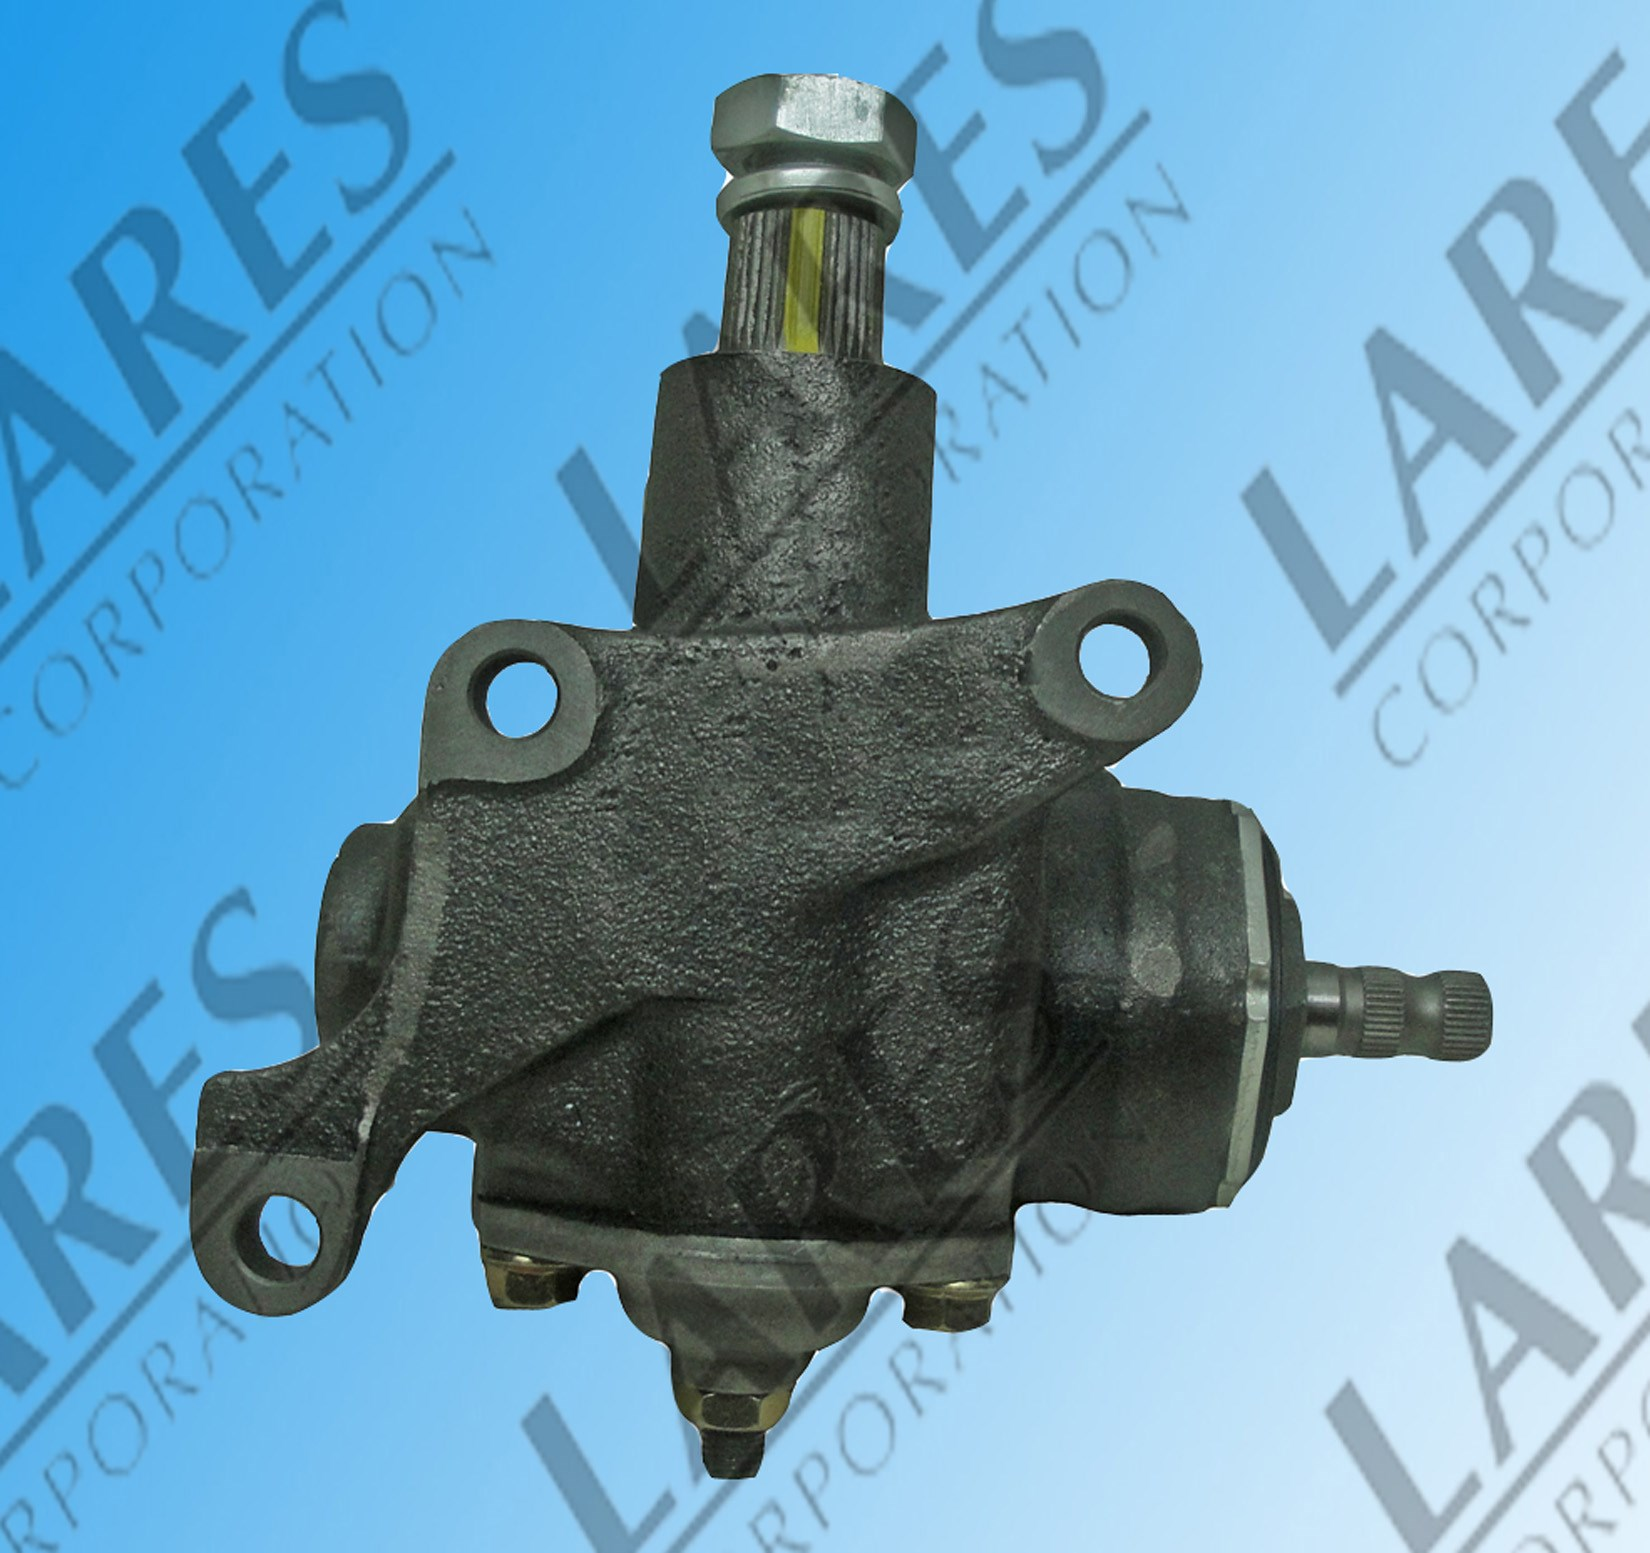 Manual Steering Gear, Part No. 18010